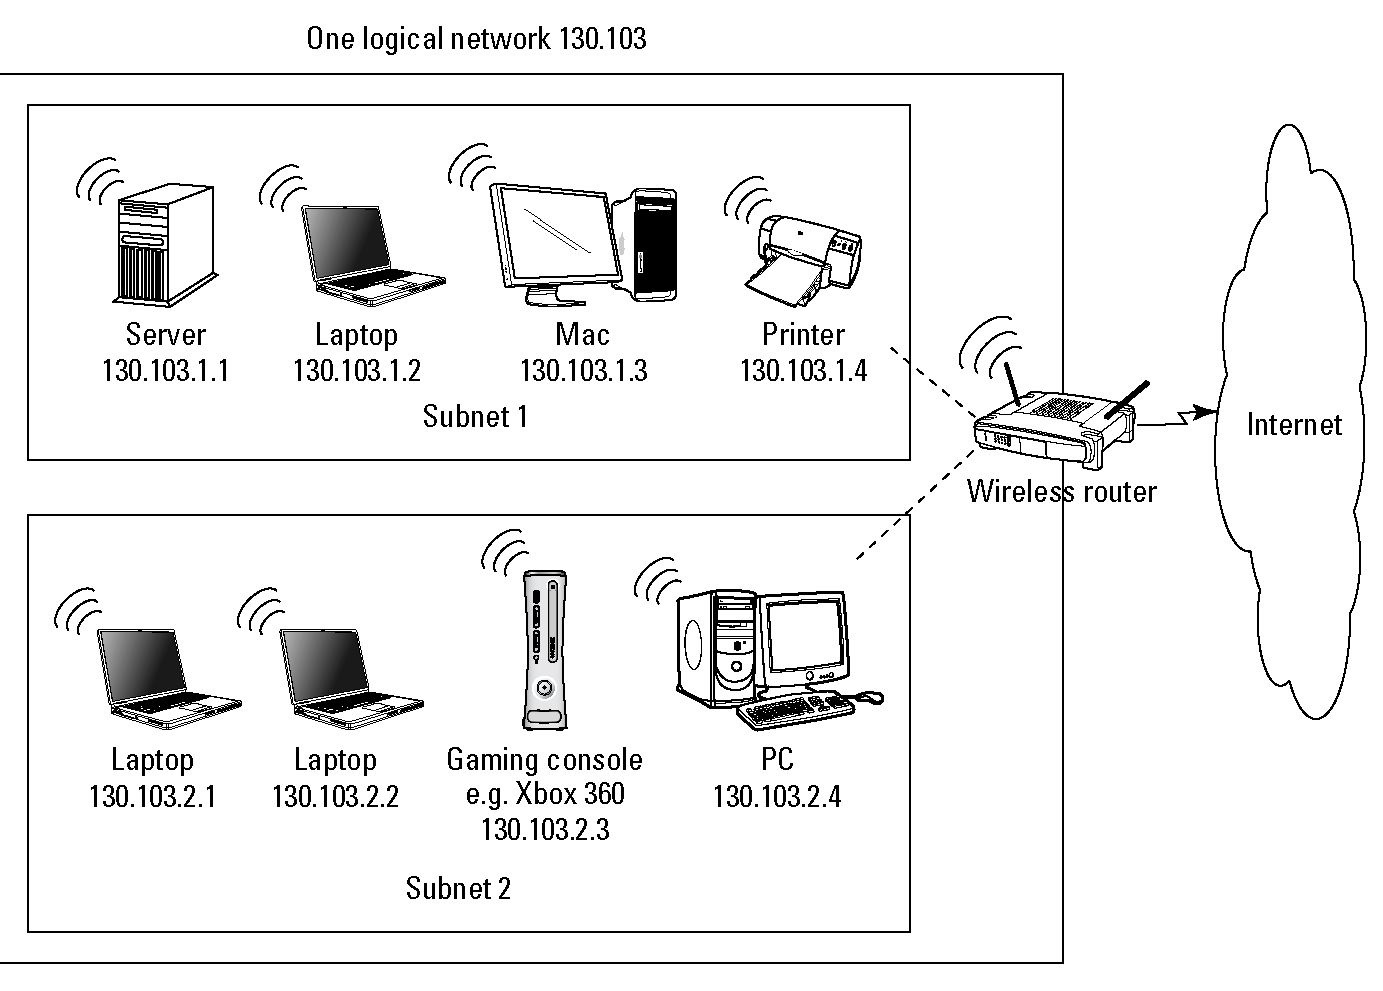 hight resolution of this router gives internet access to both subnets and connects the subnets to each other